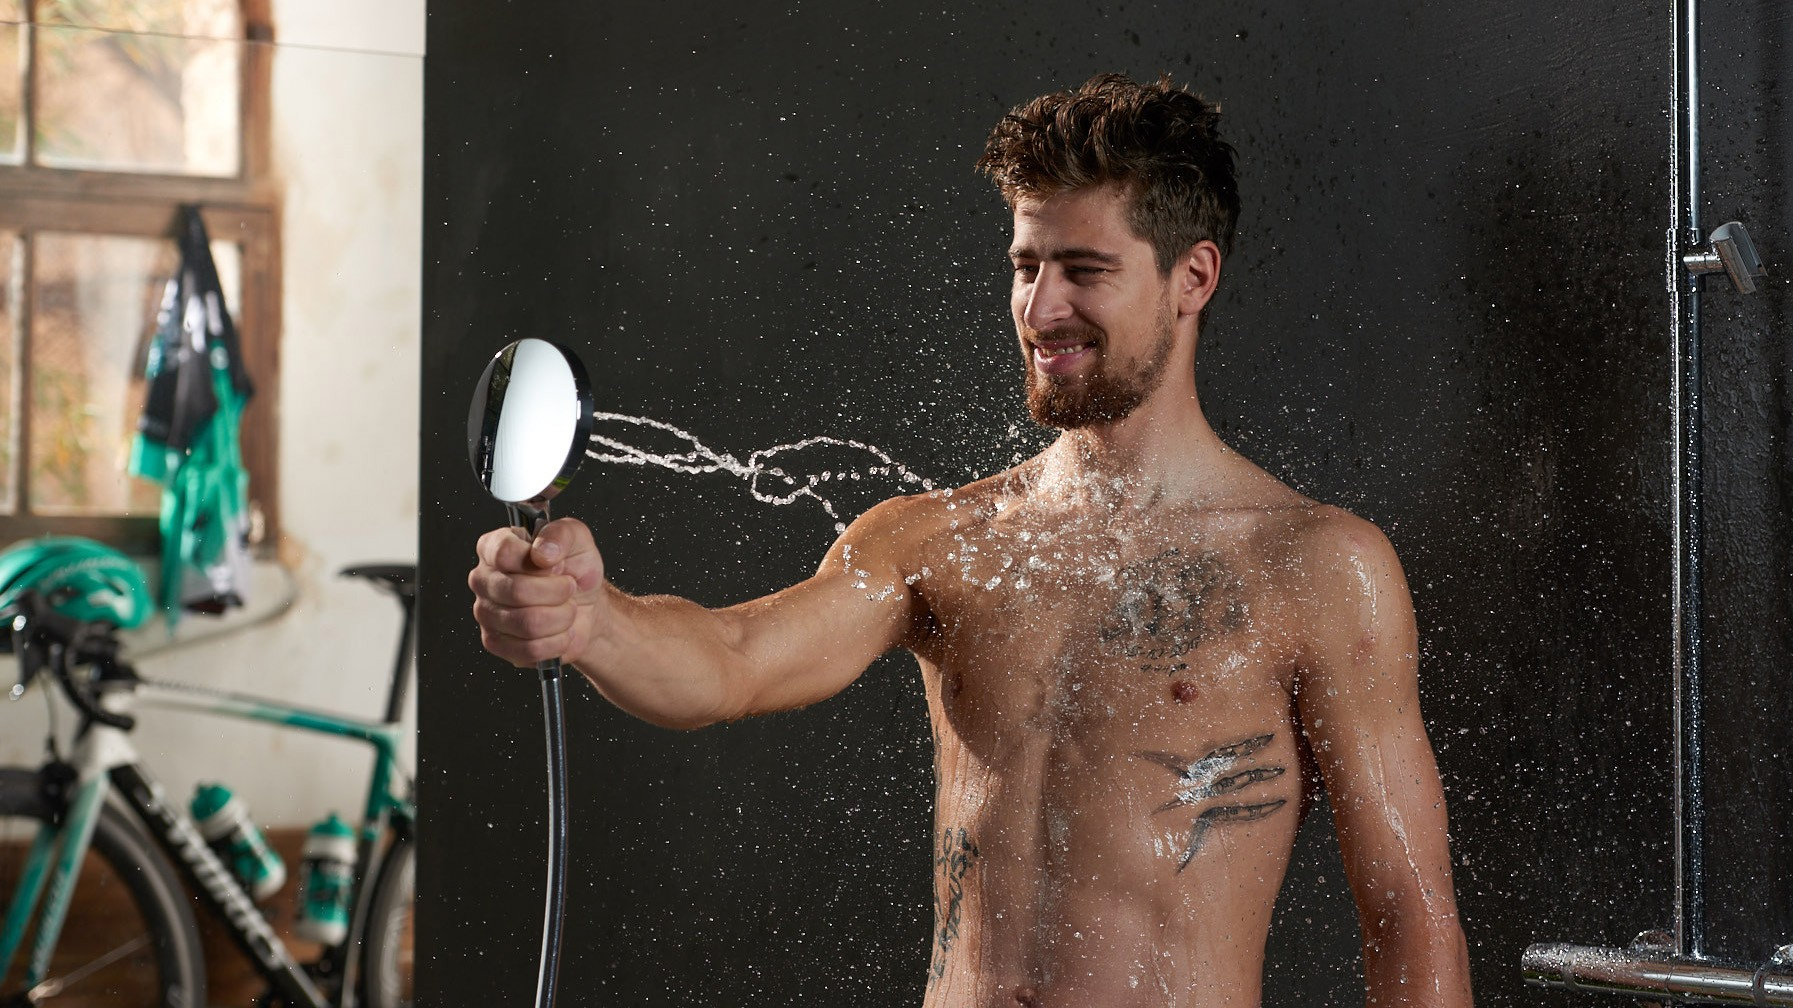 We're not sure if Peter Sagan understands showering